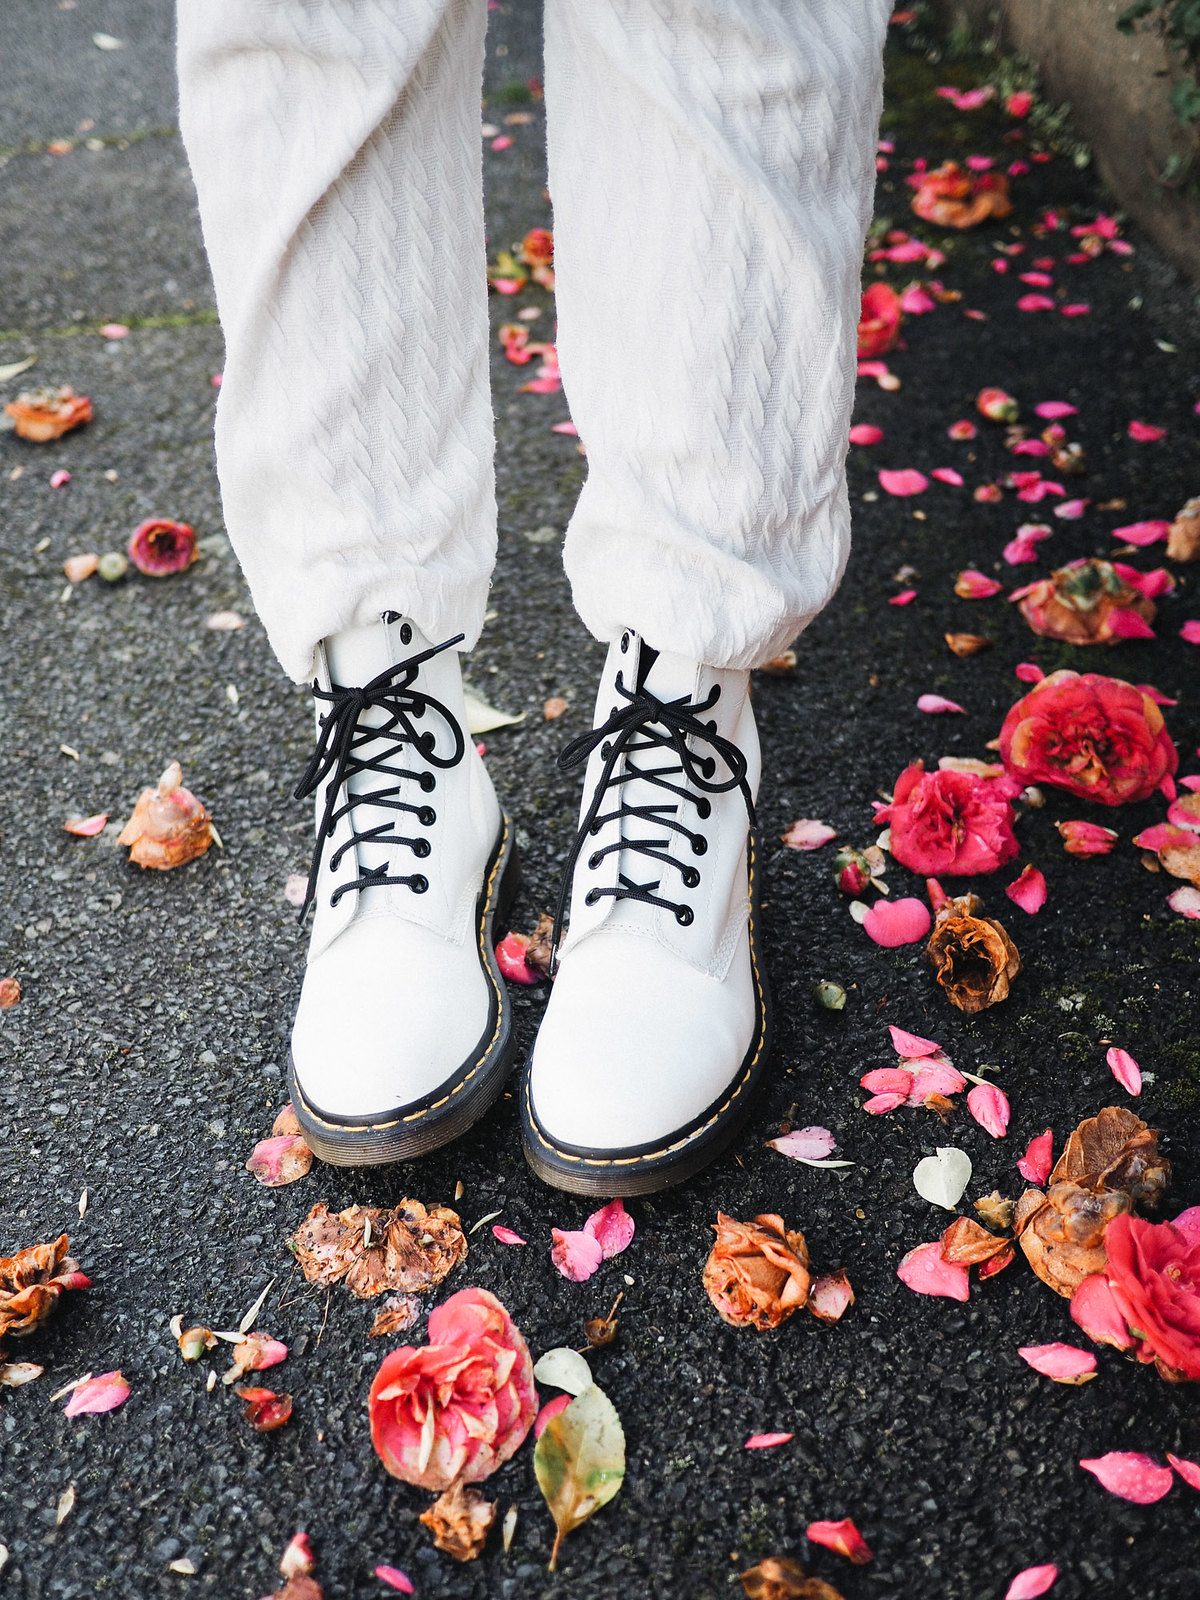 doc-martens-blanches.jpg